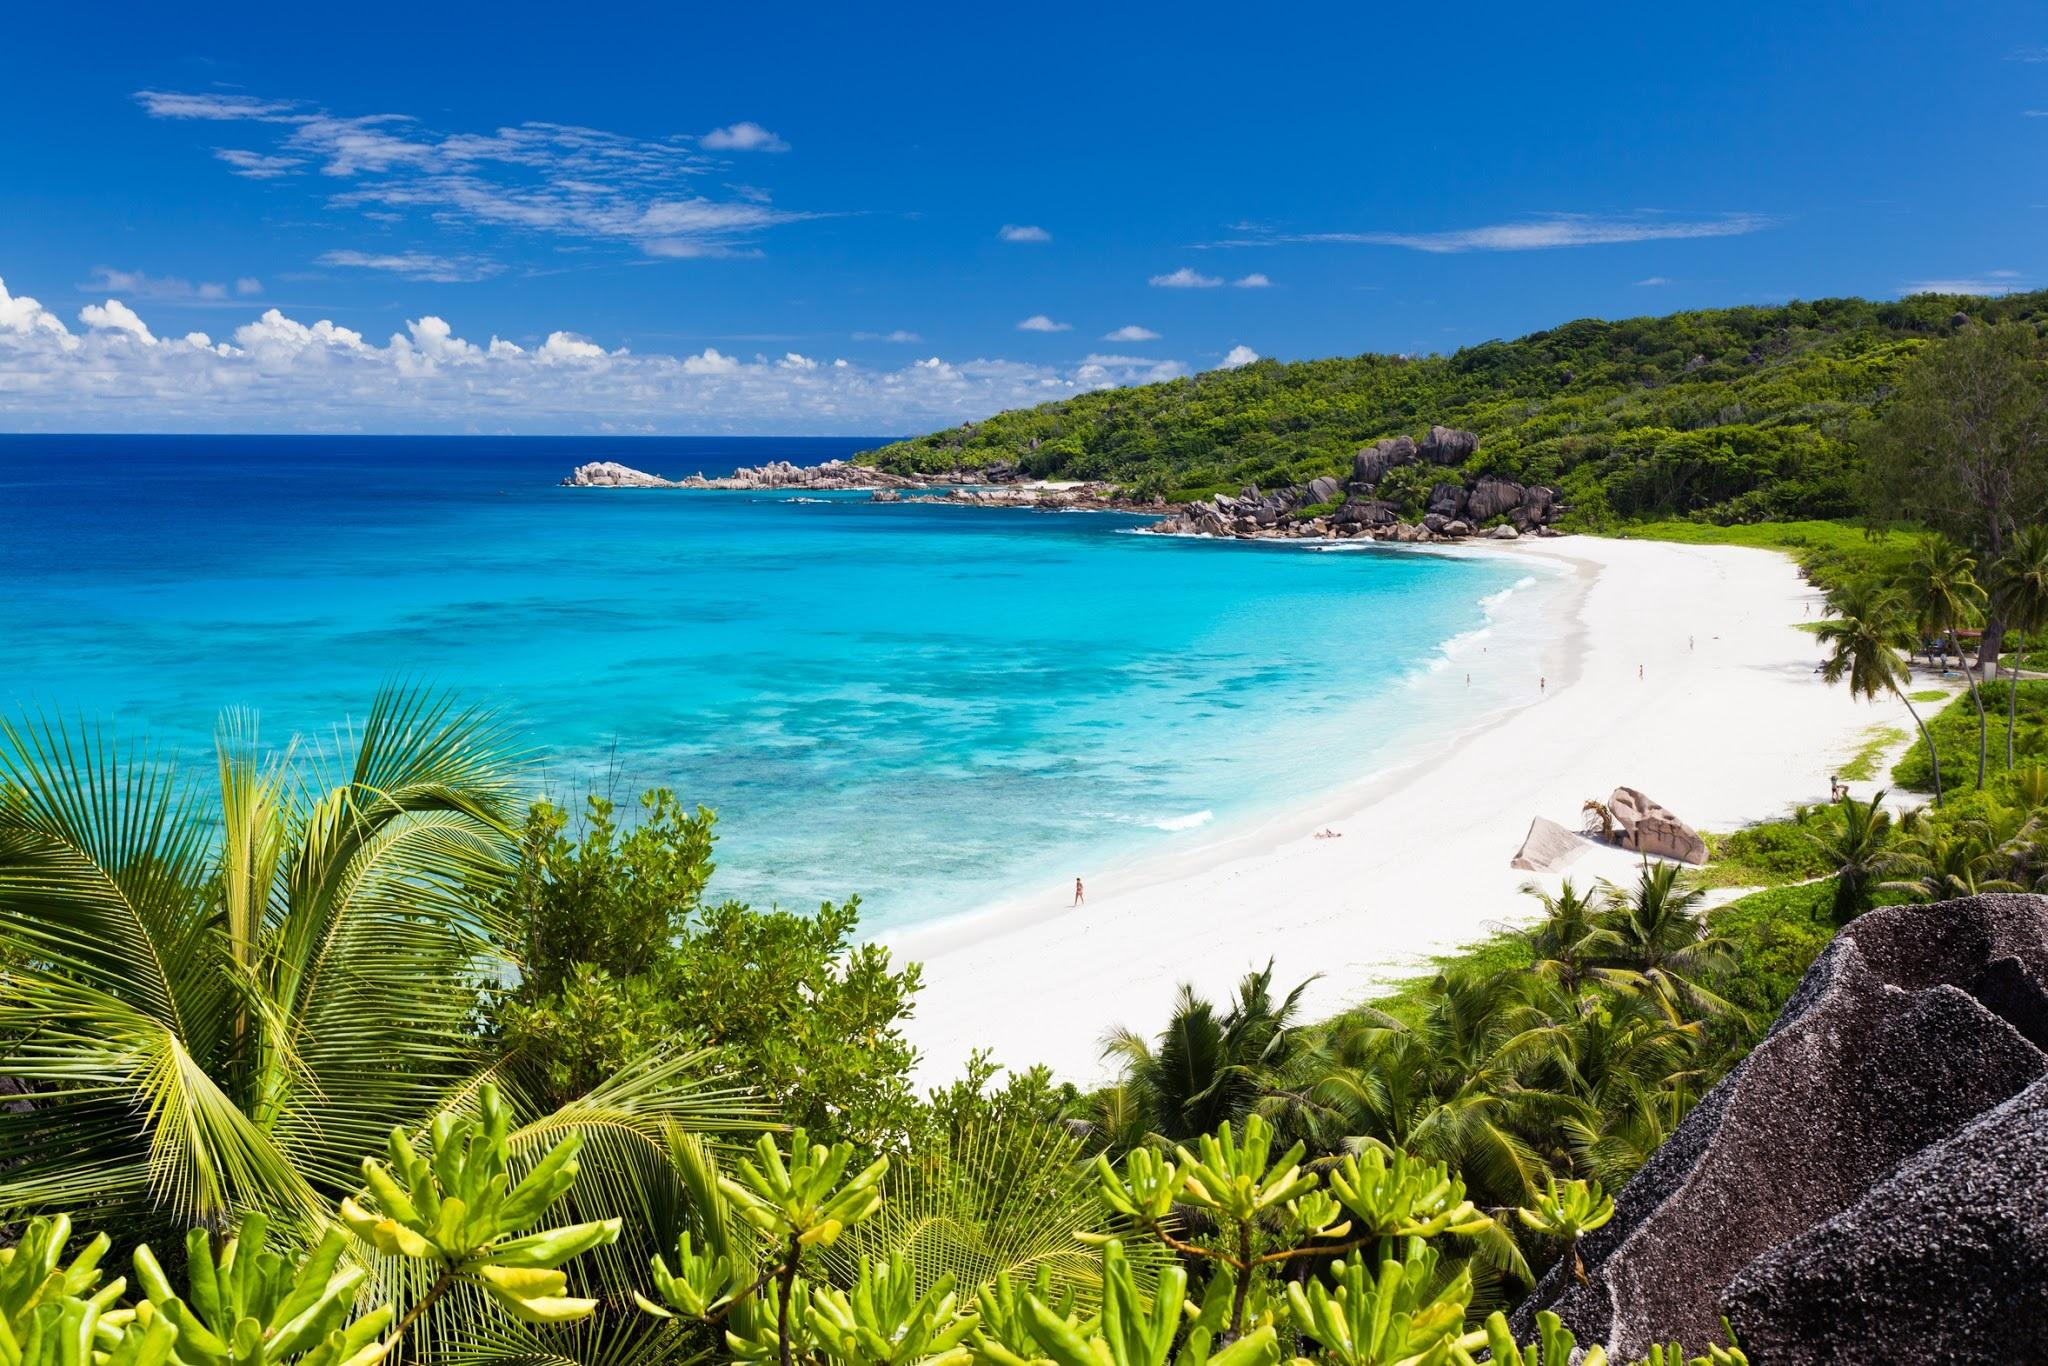 /optitravel/online/www/layout22/single_product.php?pkt_id=513&Produto=Istambul & Mahé&destino=SEYCHELLES